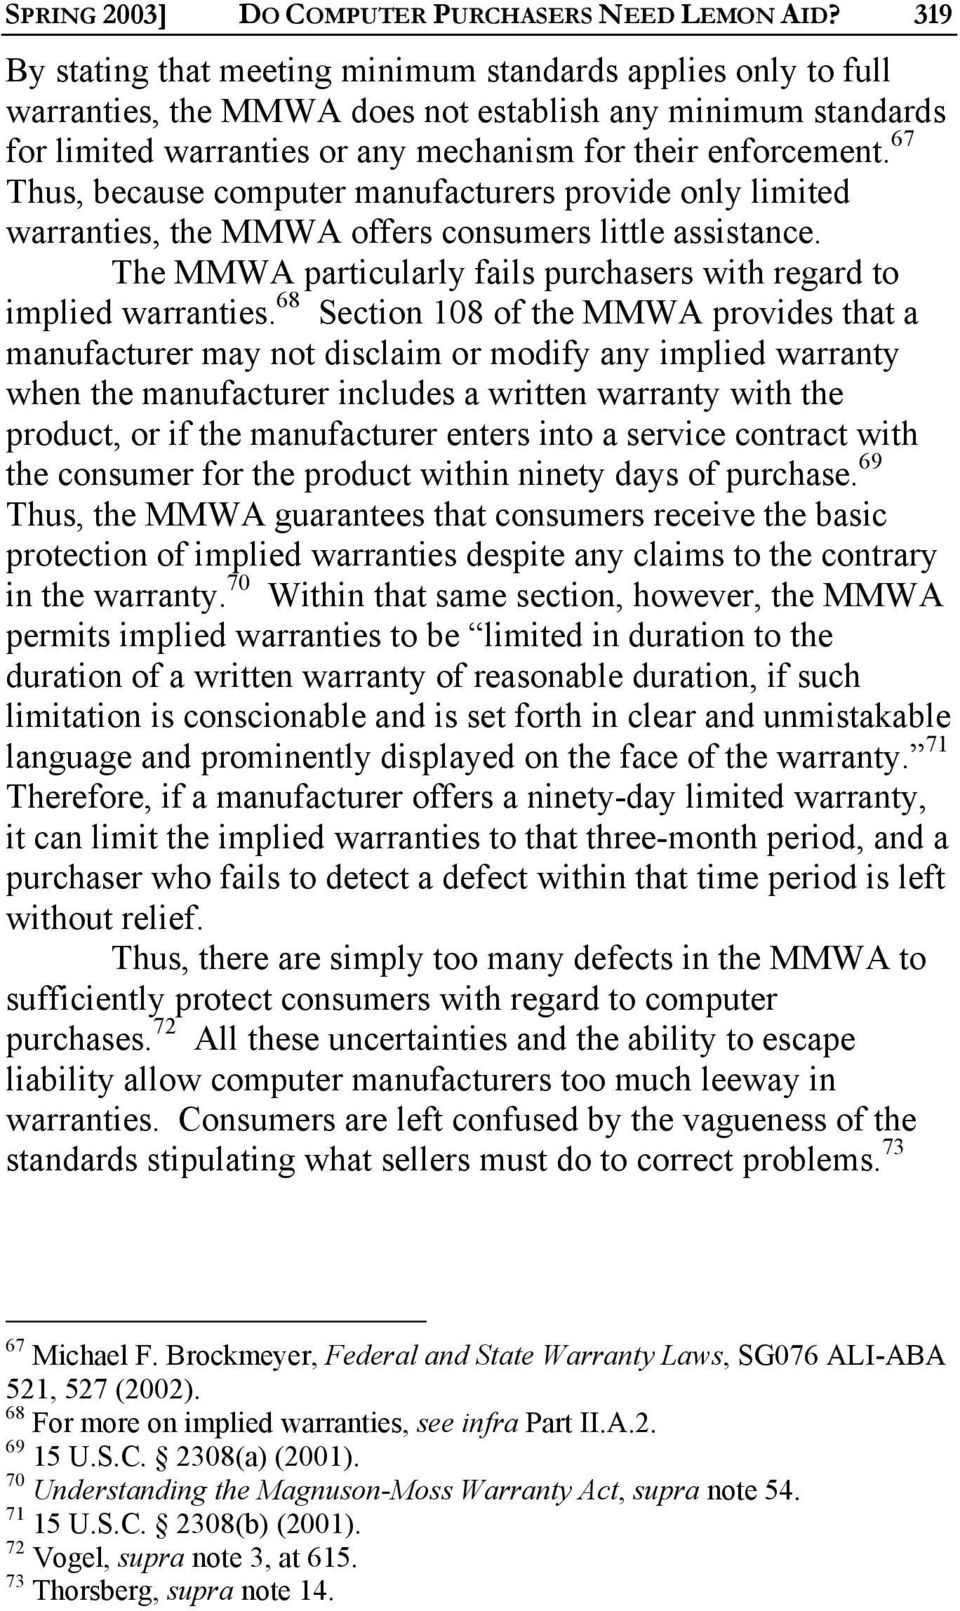 67 Thus, because computer manufacturers provide only limited warranties, the MMWA offers consumers little assistance. The MMWA particularly fails purchasers with regard to implied warranties.